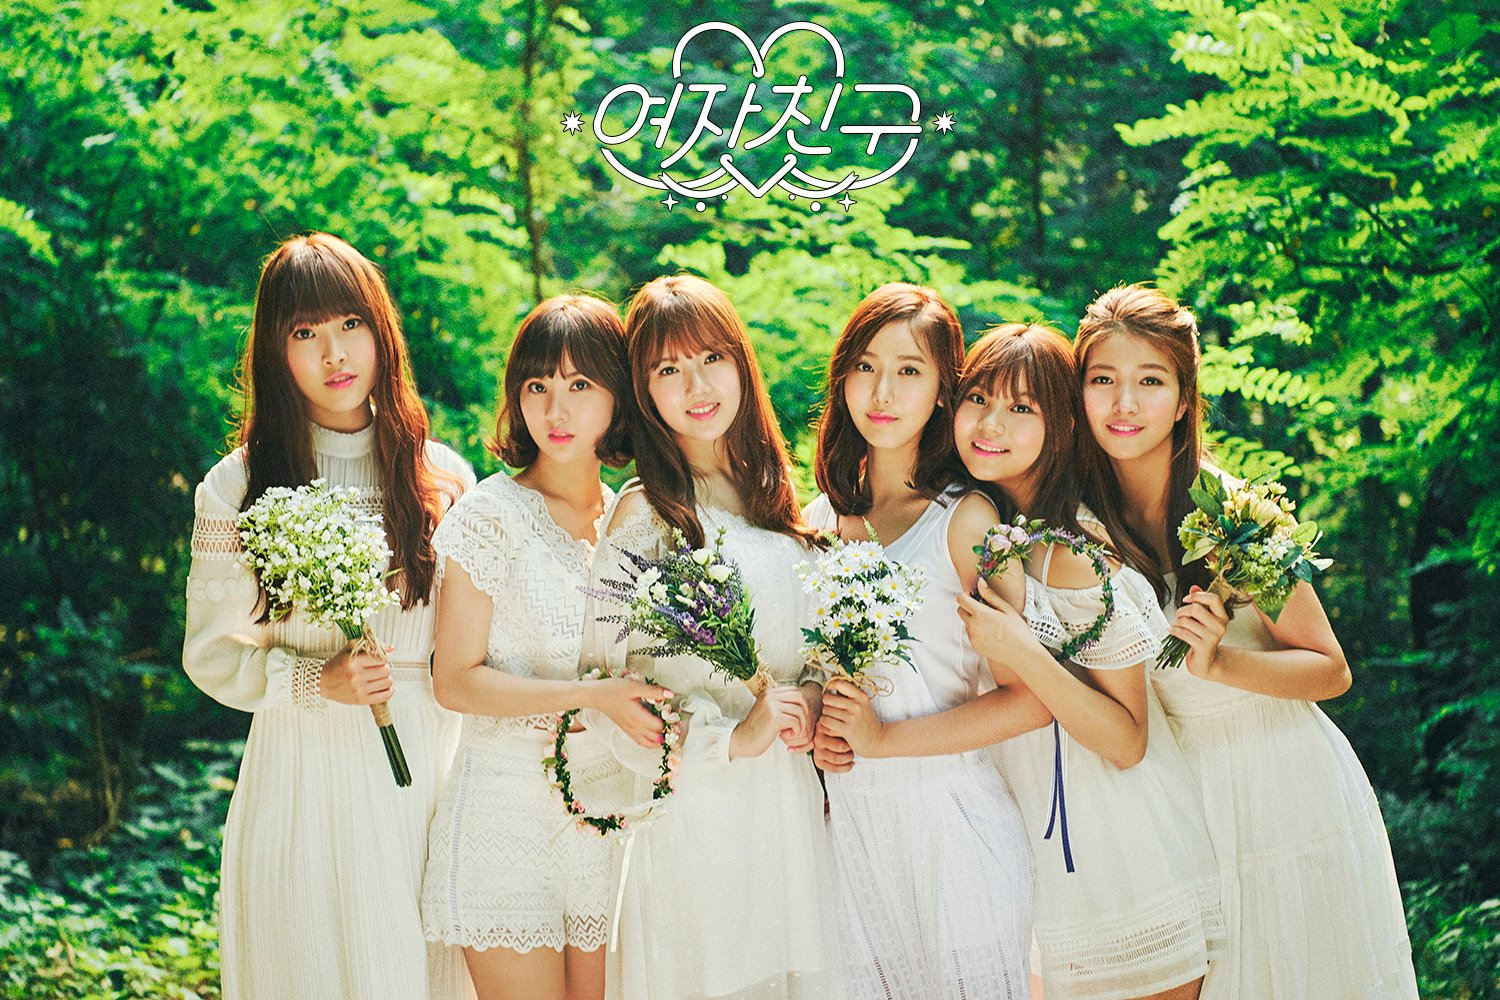 Update: GFRIEND Shares Track List, Even More Teasers, And Album Covers For Comeback